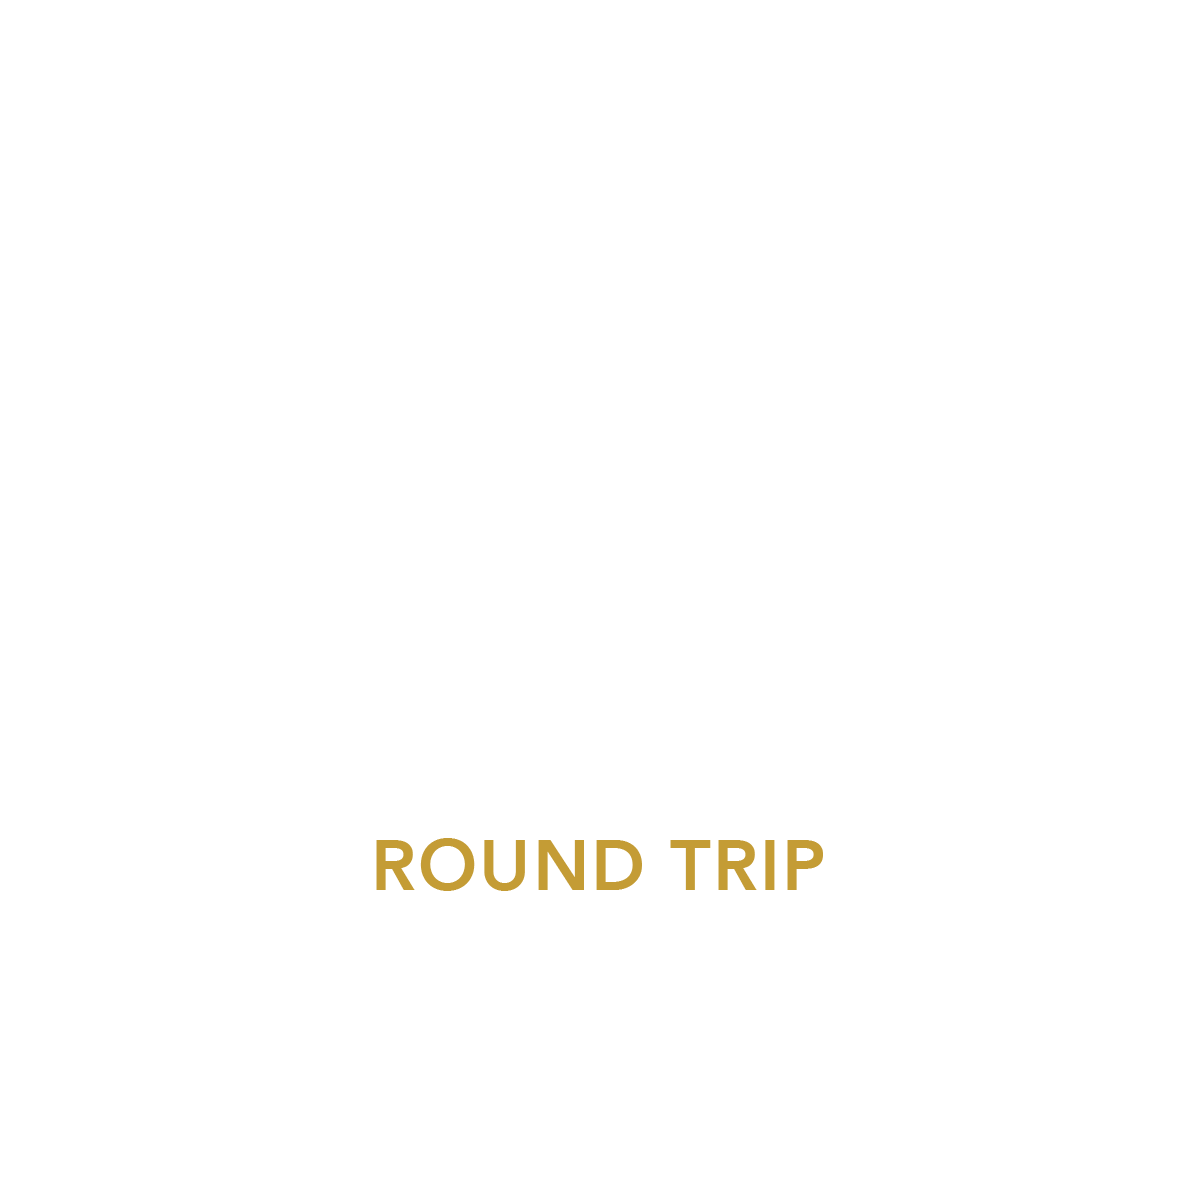 Two tickets for travel